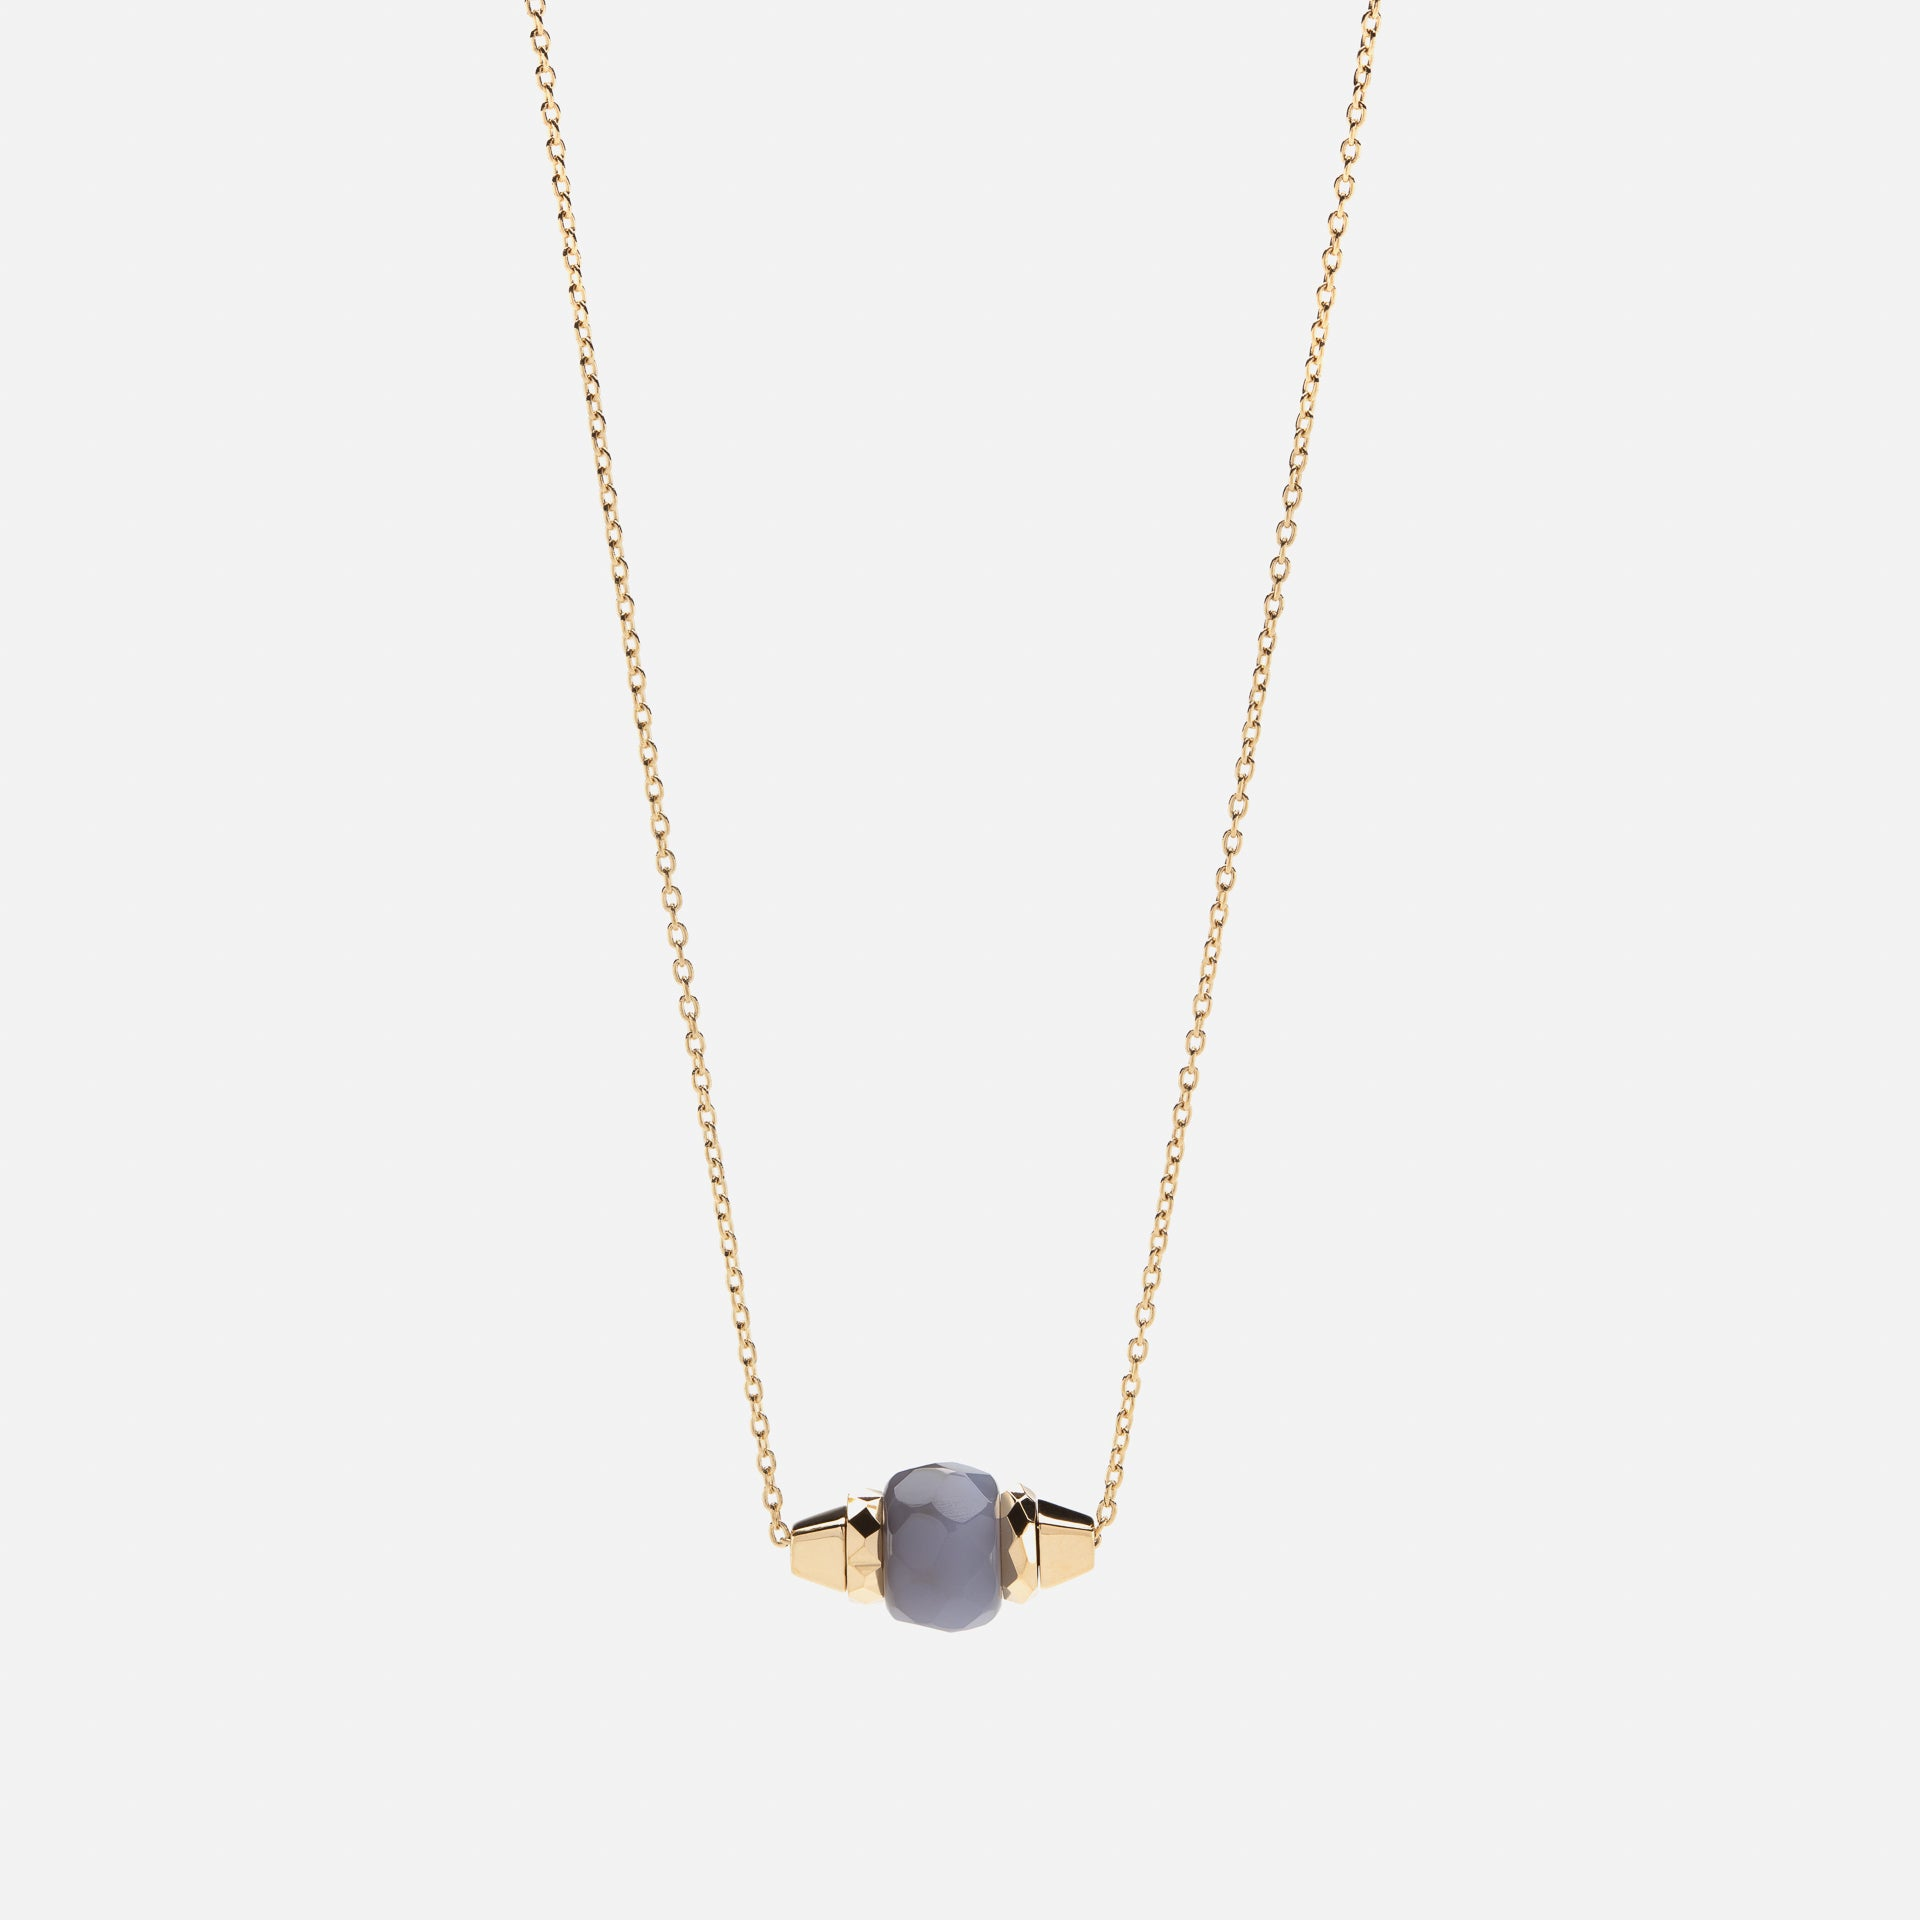 Ruby & Friends Necklace in Yellow Gold with Moon stone - Al Zain Jewellery